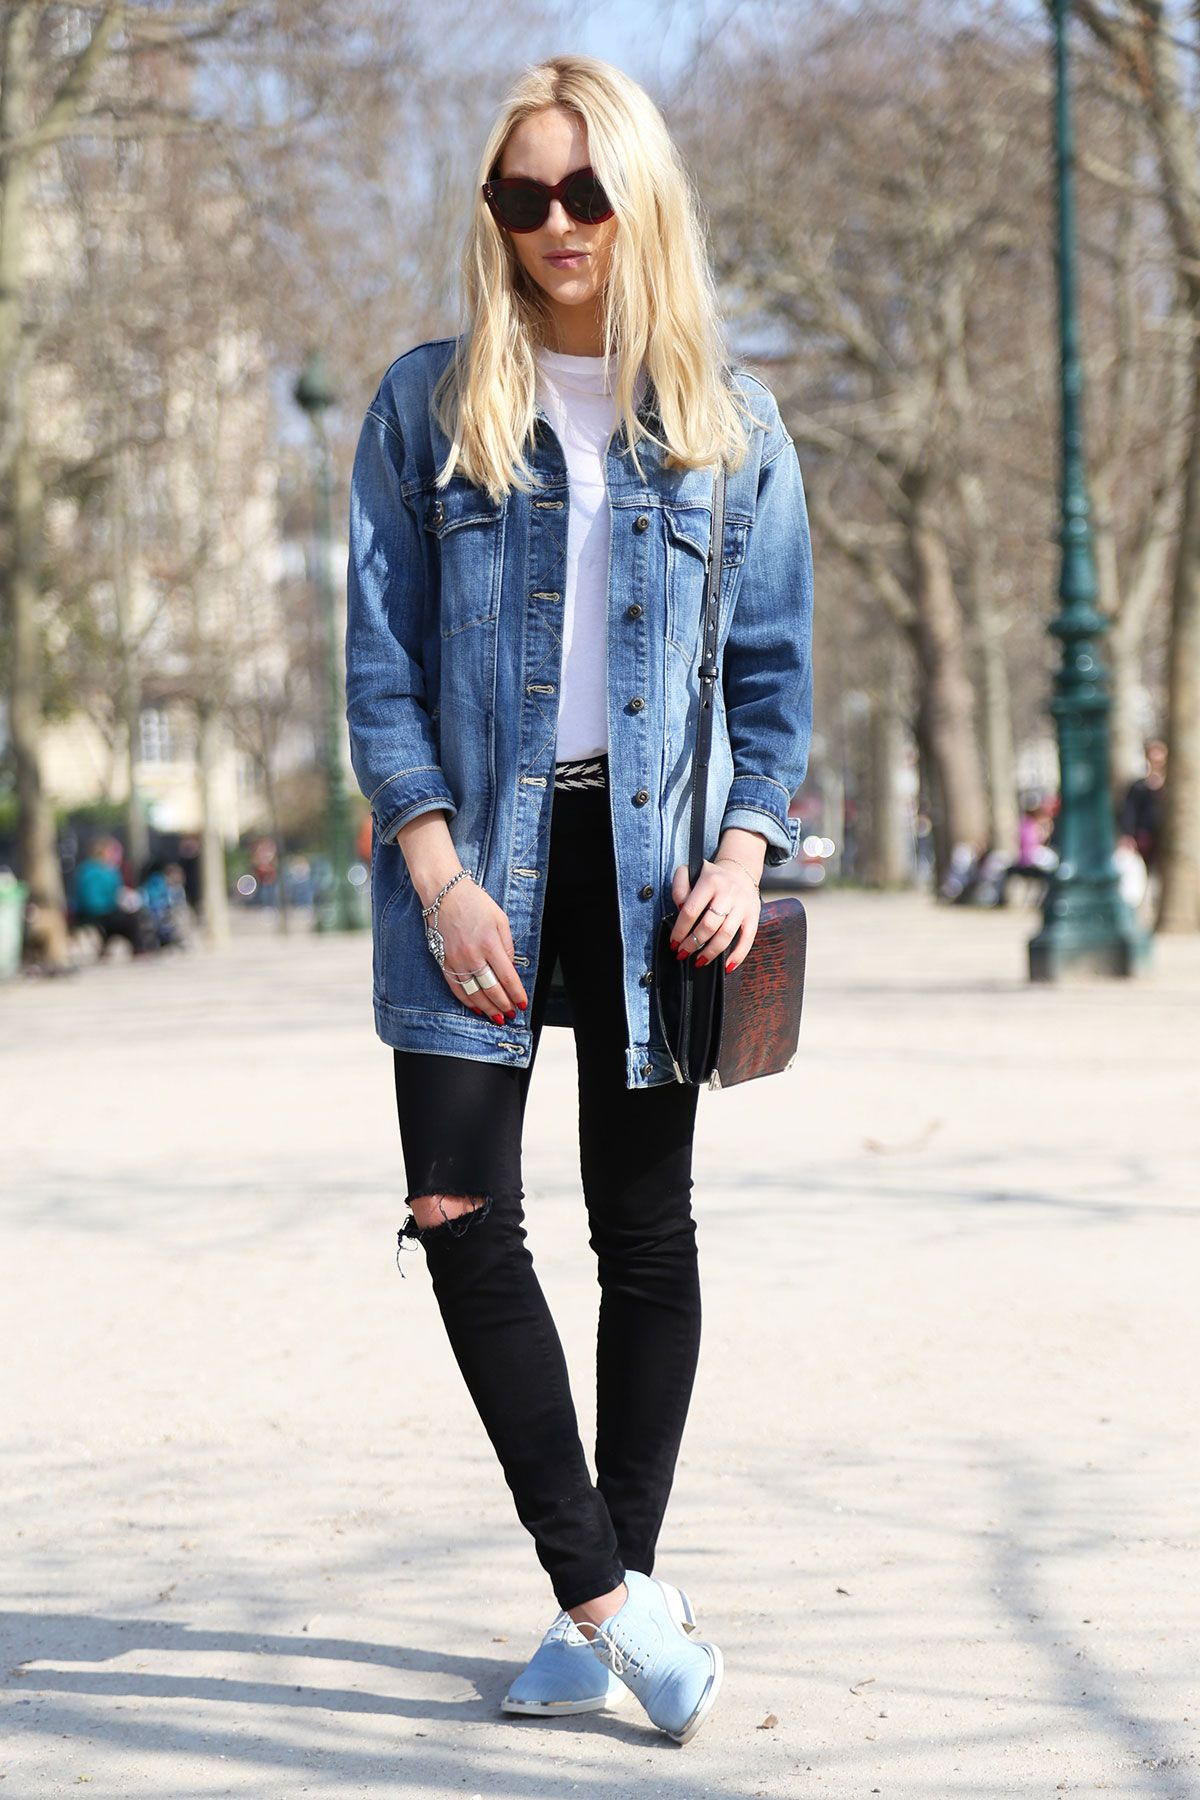 Shea Marie Of Peace Love Shea In A Long Denim Jacket And Distressed Black Jeans Jaqueta Jeans Oversized Jaqueta Jeans Longa Jaqueta Jeans [ 1800 x 1200 Pixel ]